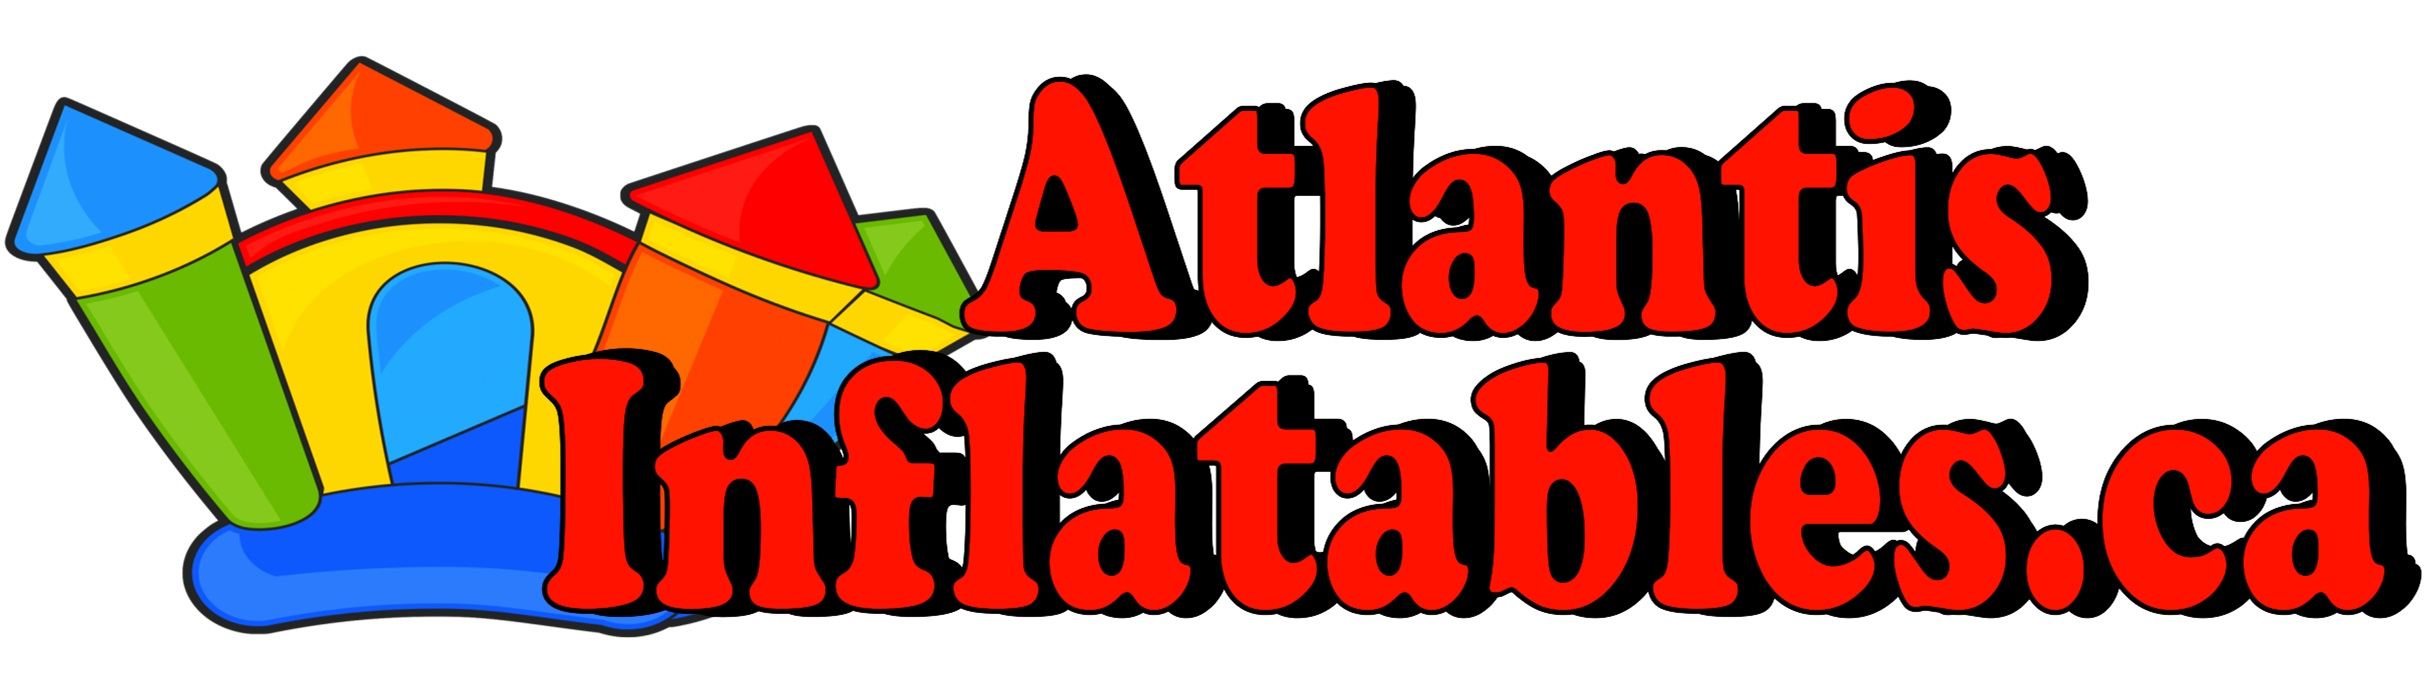 Atlantis Inflatables Bounce House Rentals